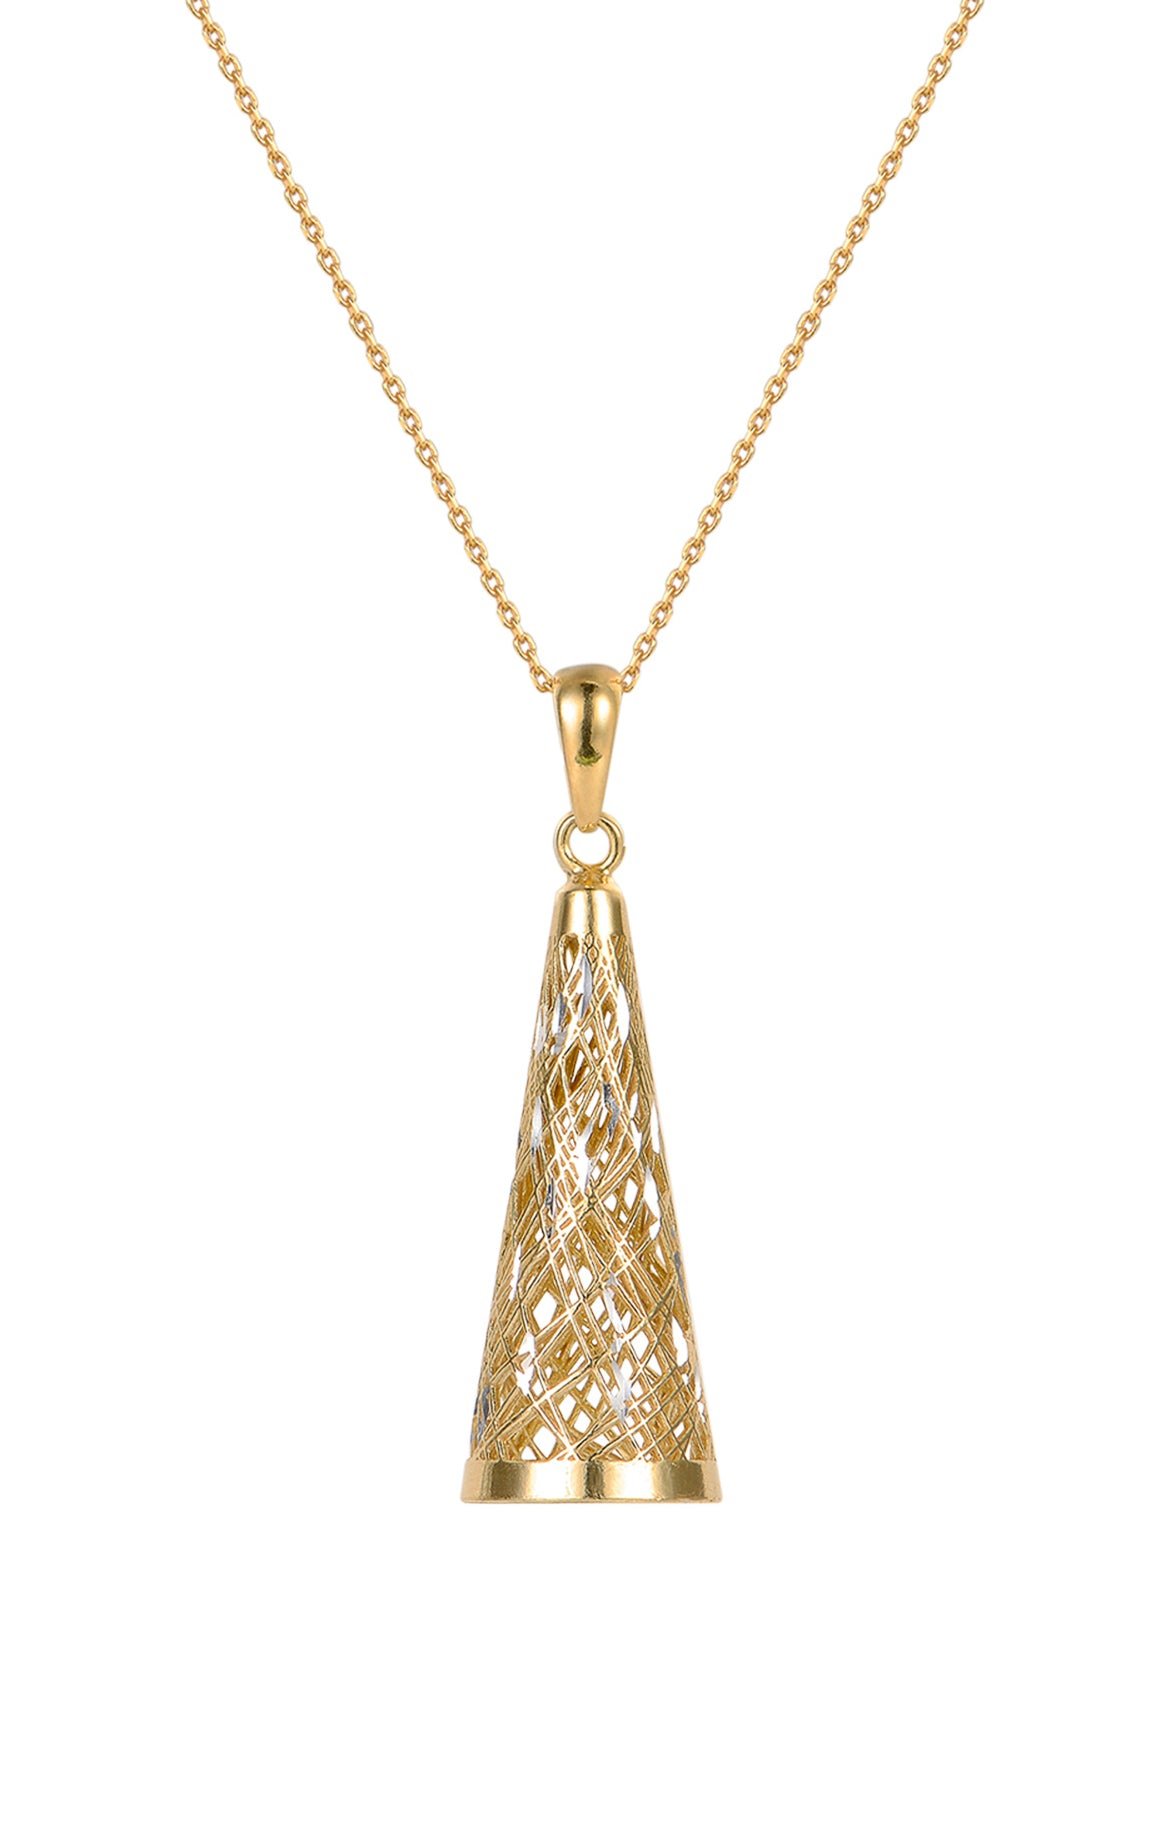 Structure of the Universe Gold Necklace